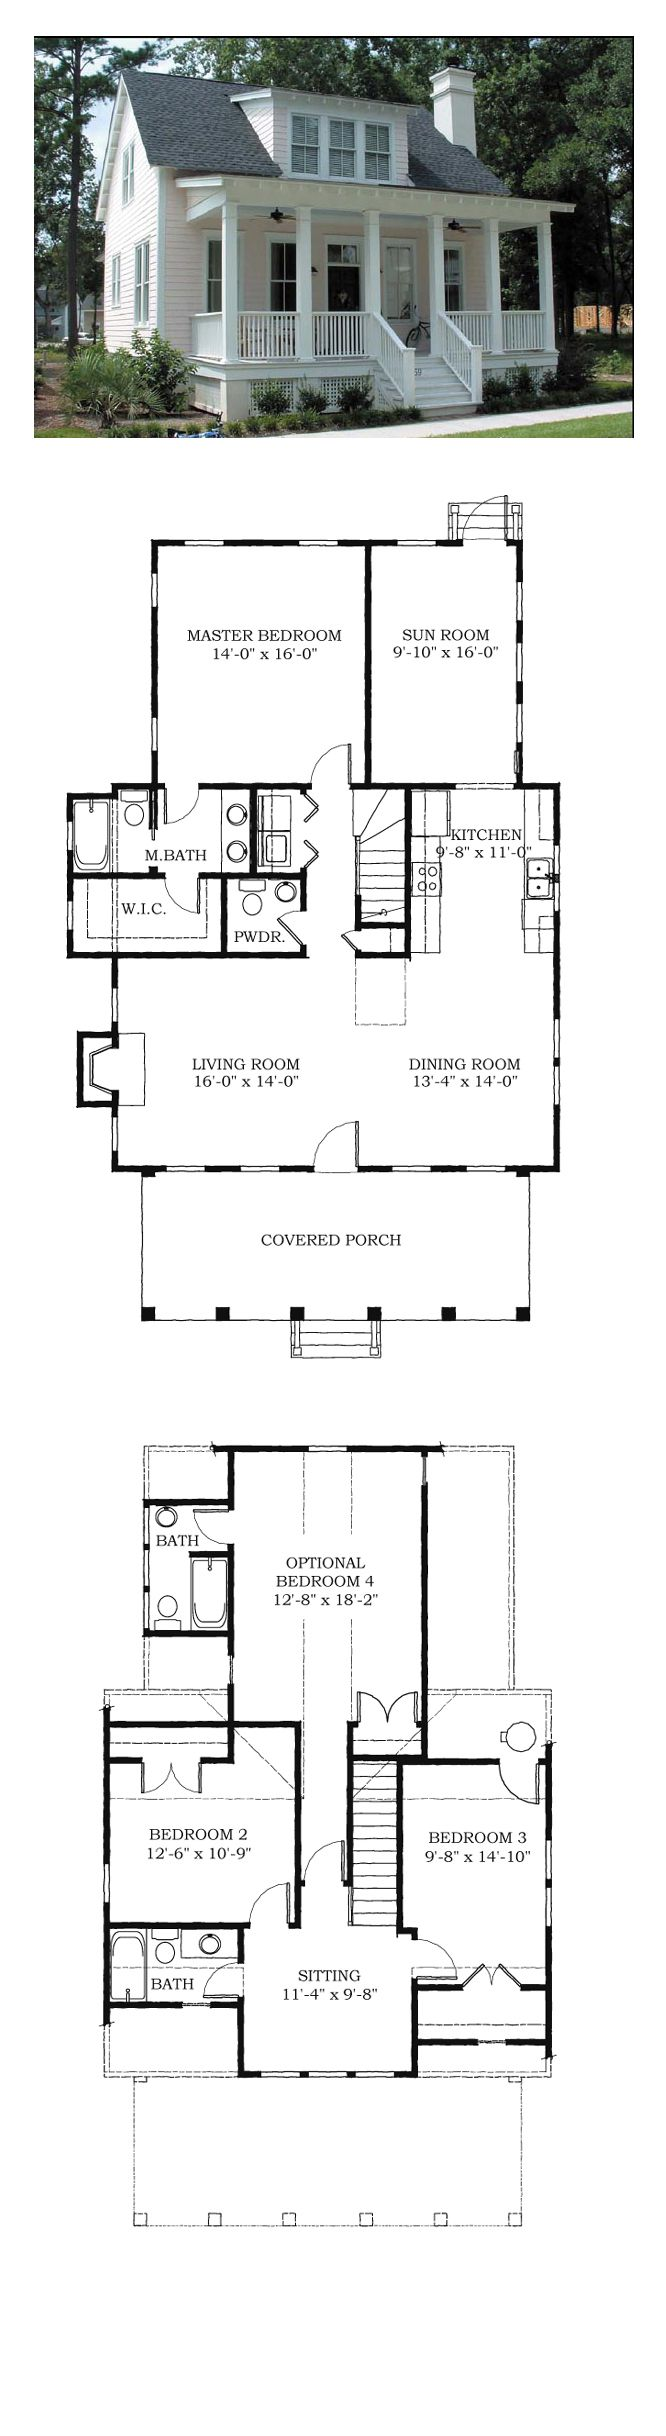 best floor plans for building a home images on pinterest